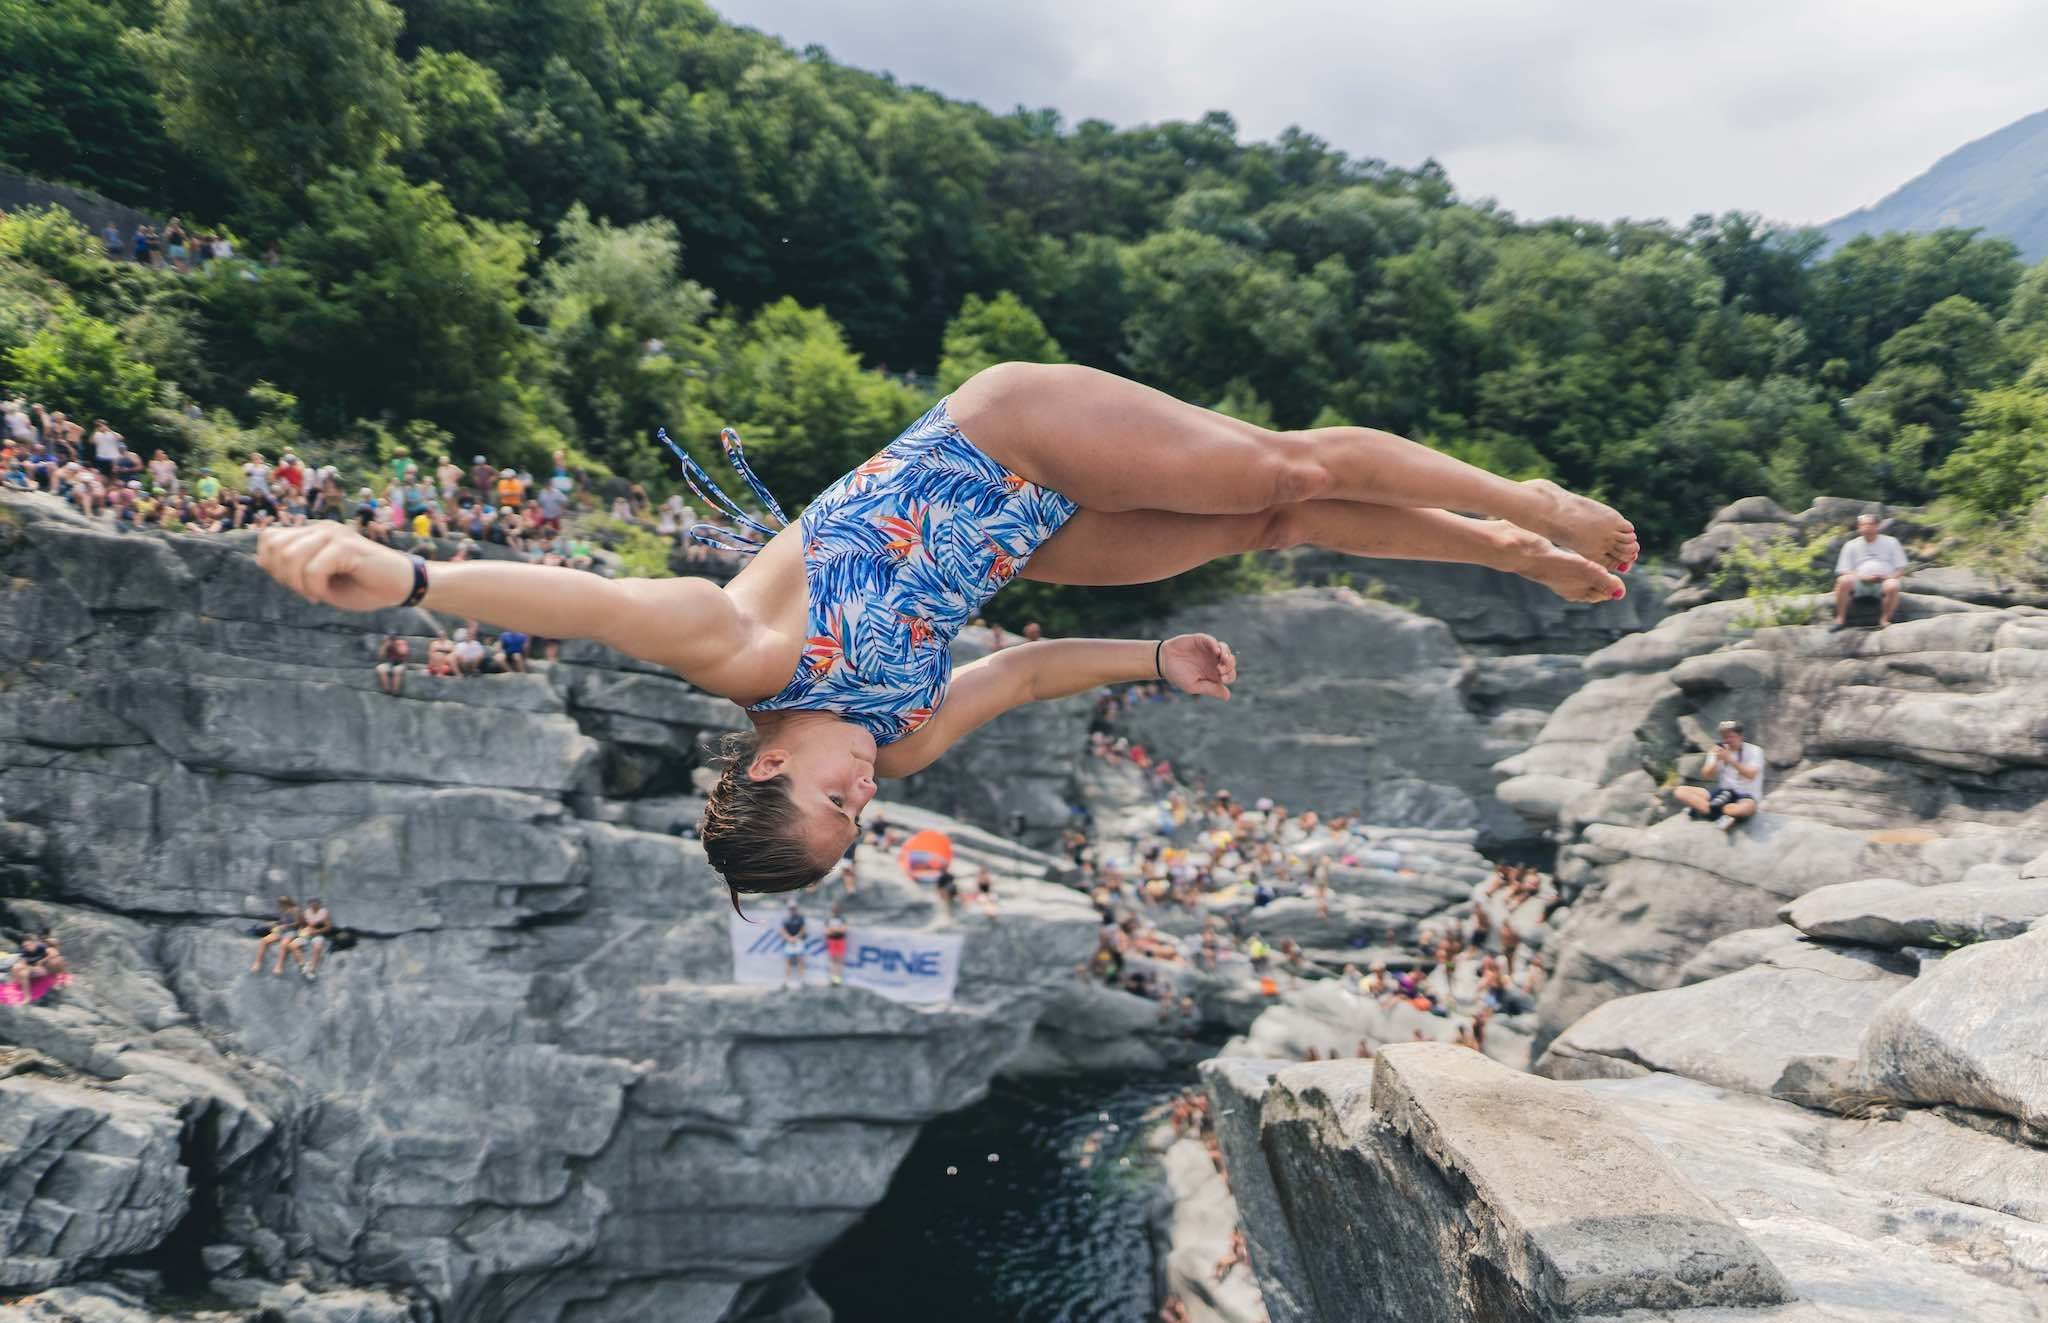 International Cliff Diving Championship 2021